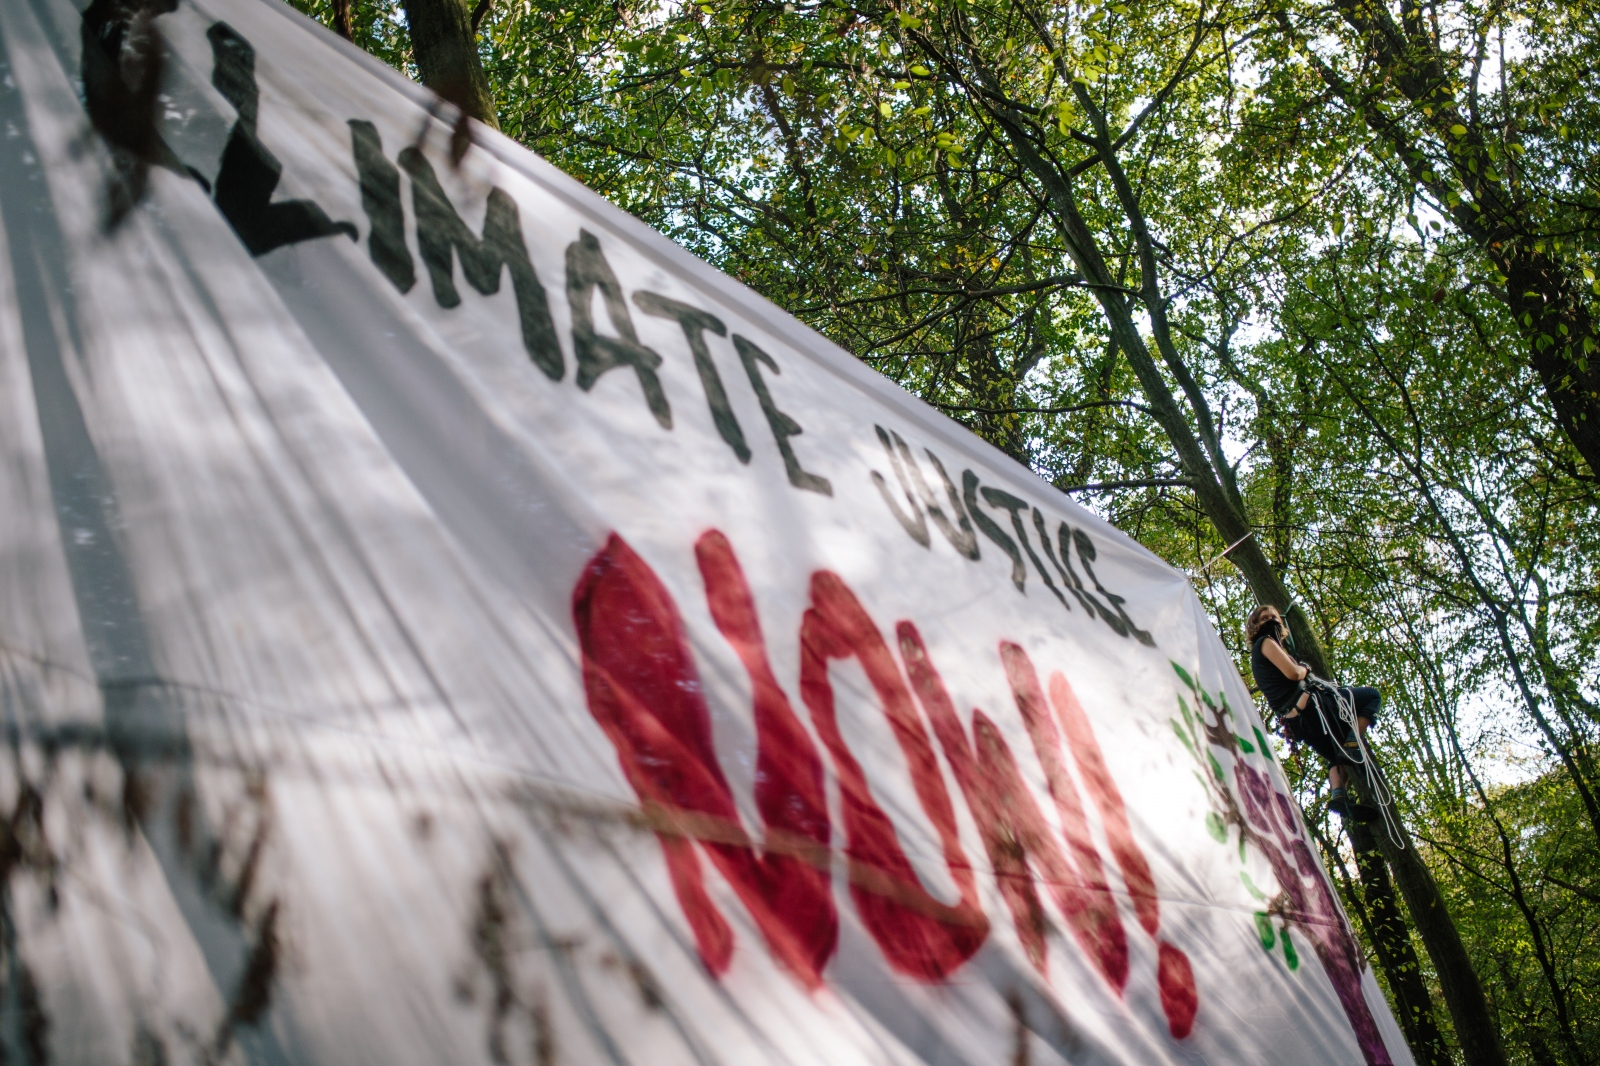 Activists put up banner 'Climate Justice Now' while climbing trees to occupy a new part of Hambach forest and build treehouses. 10-06-2018